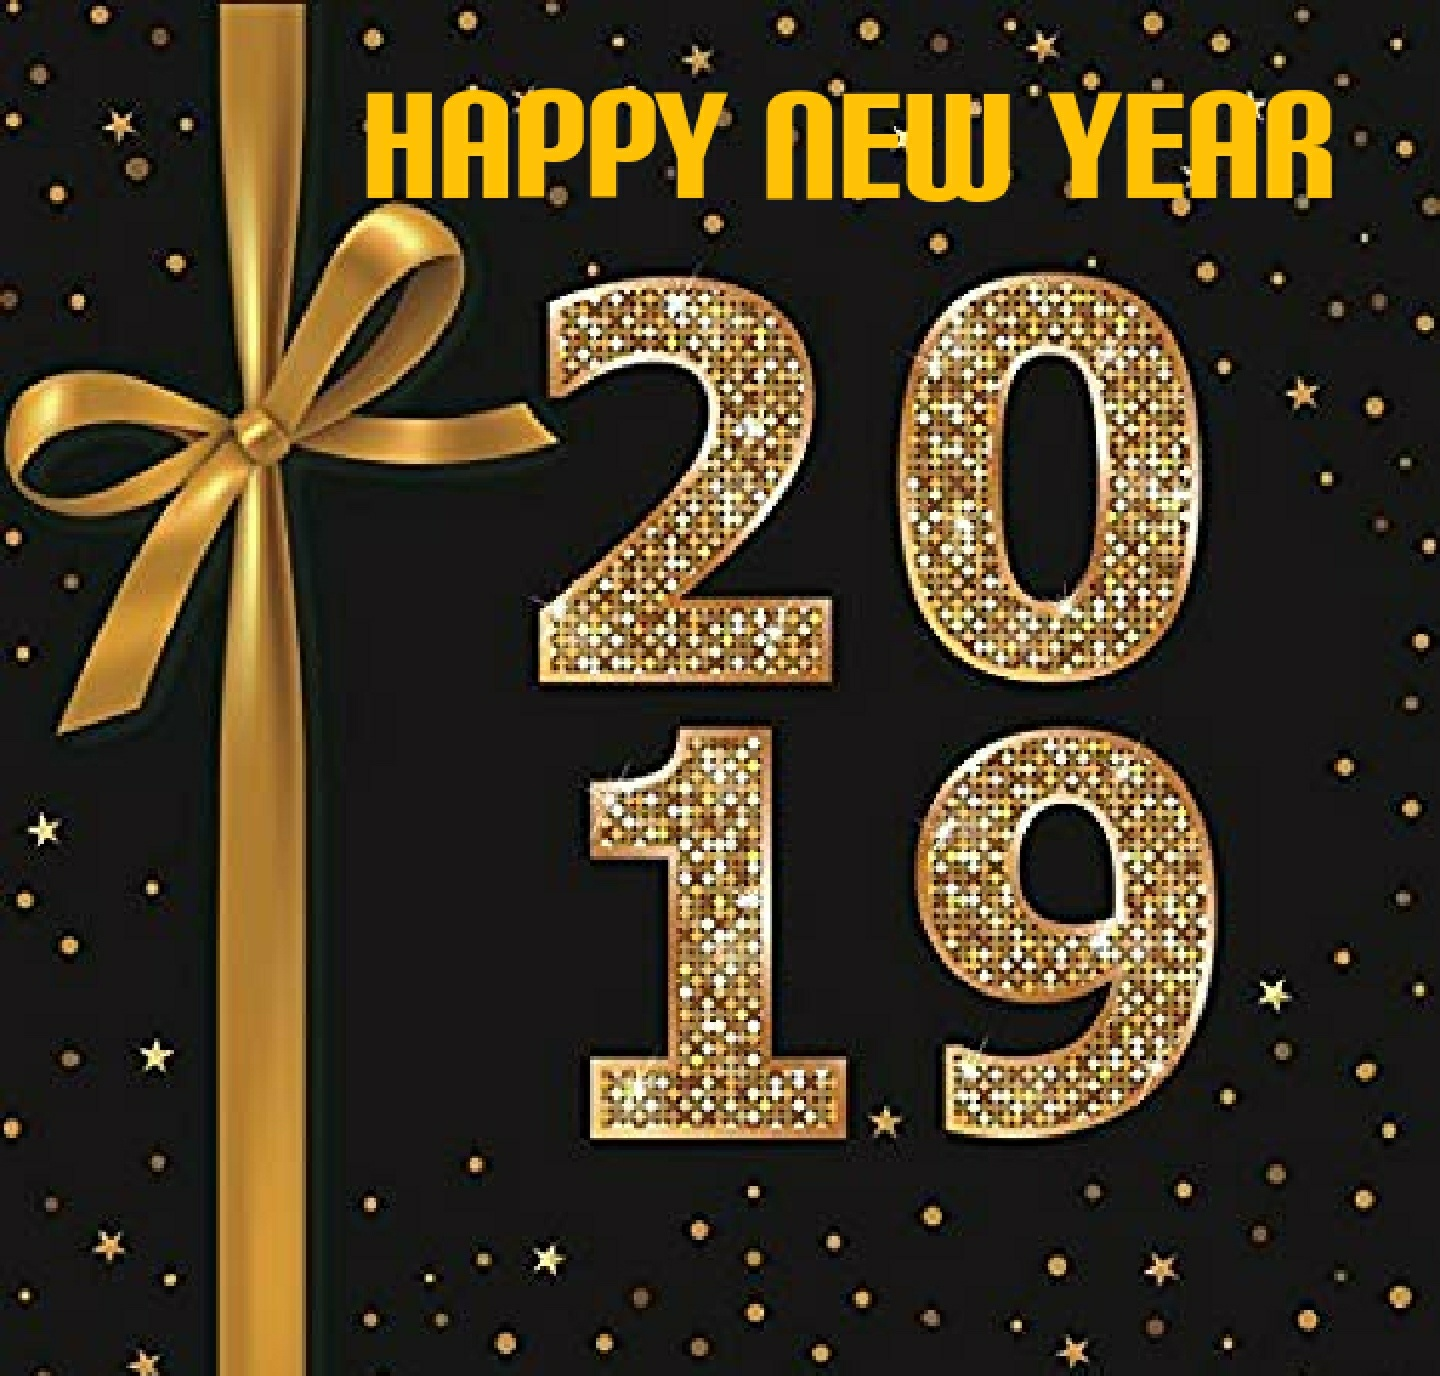 How to Celebrate Christian Happy New Year 2019? - Happy New Year 2019